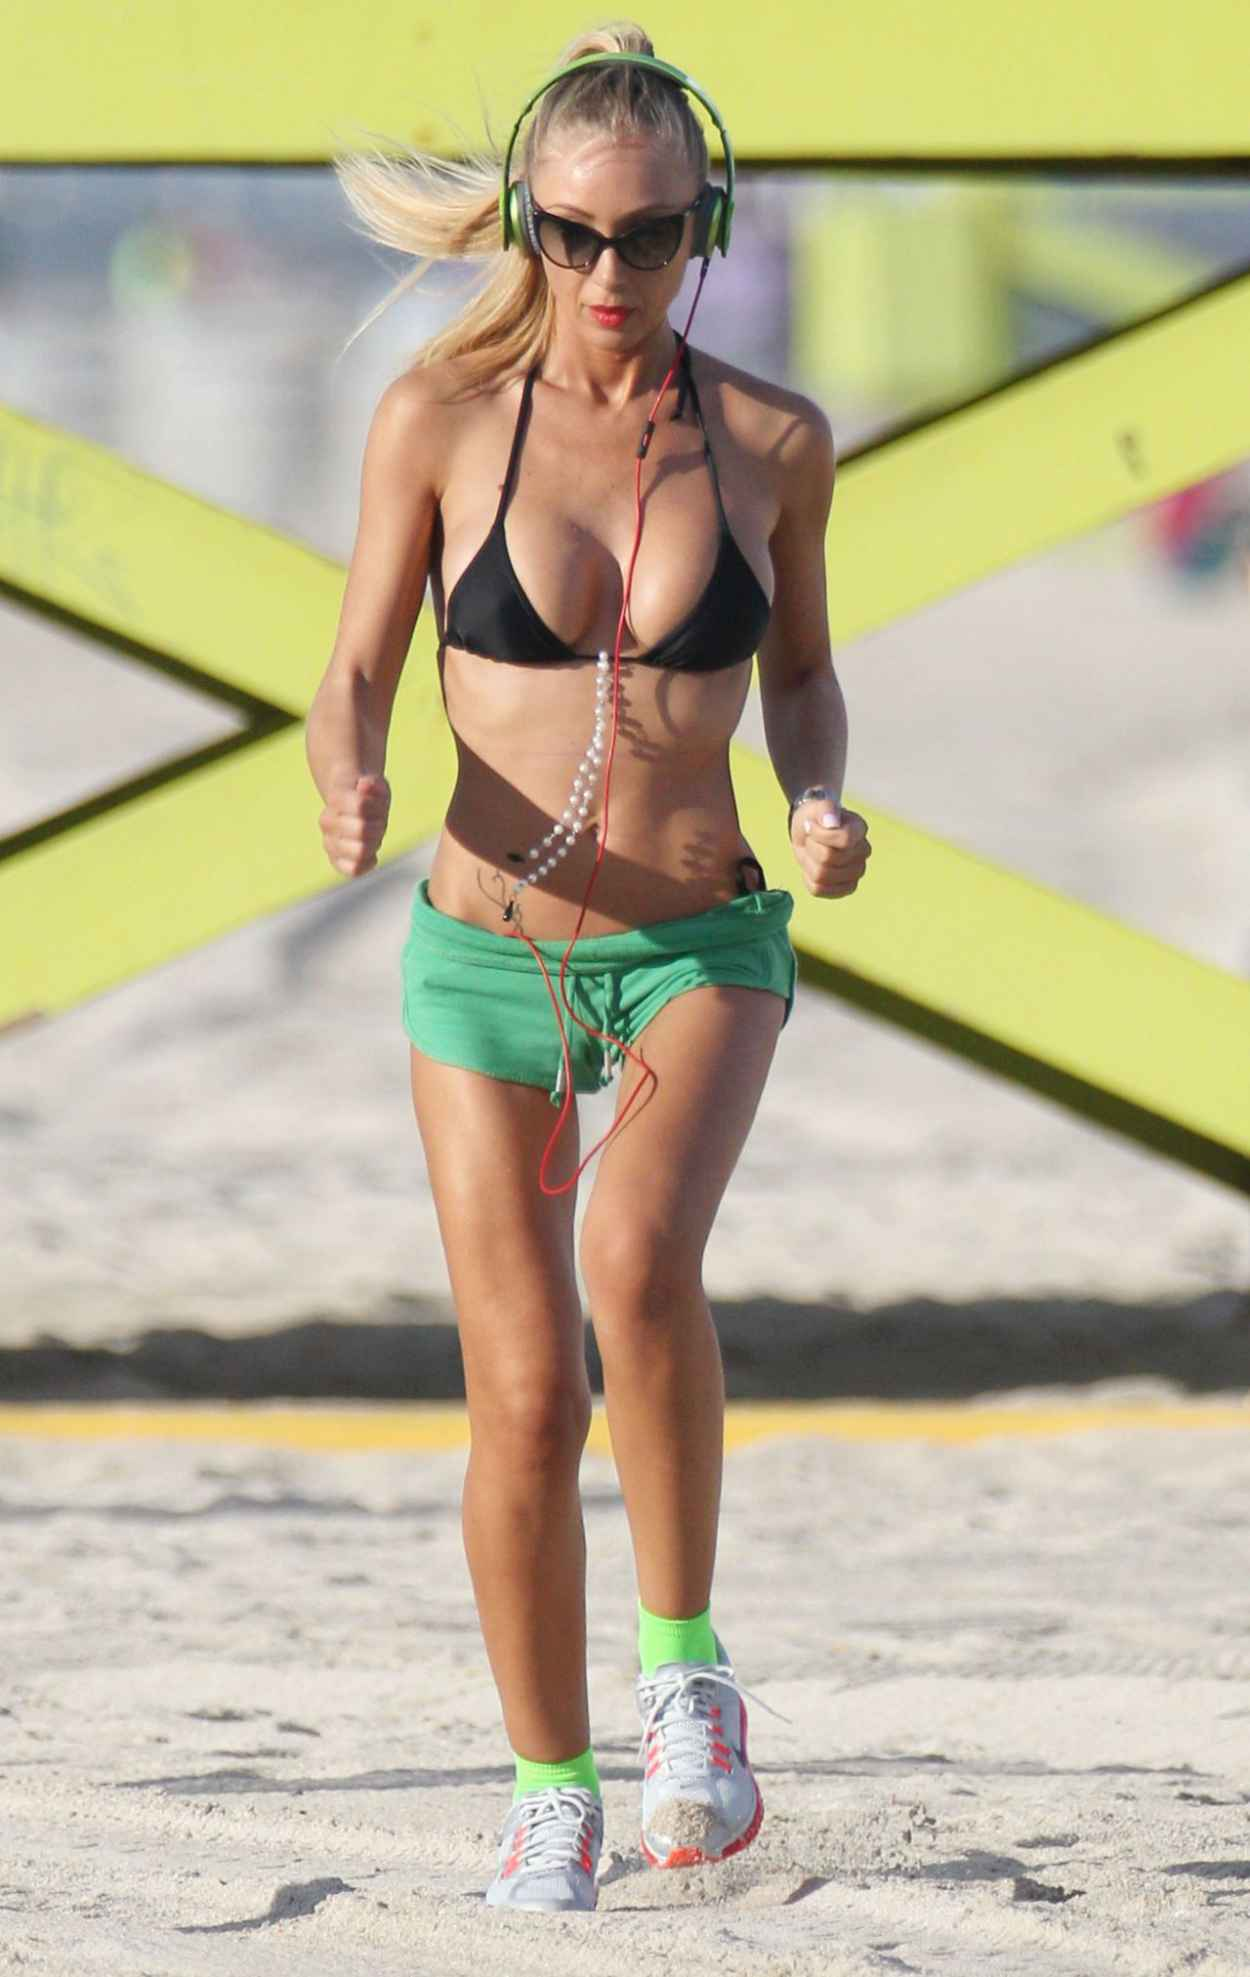 Laura Cremaschi Hot Photos - Exercising in Miami Beach - November 2015-2